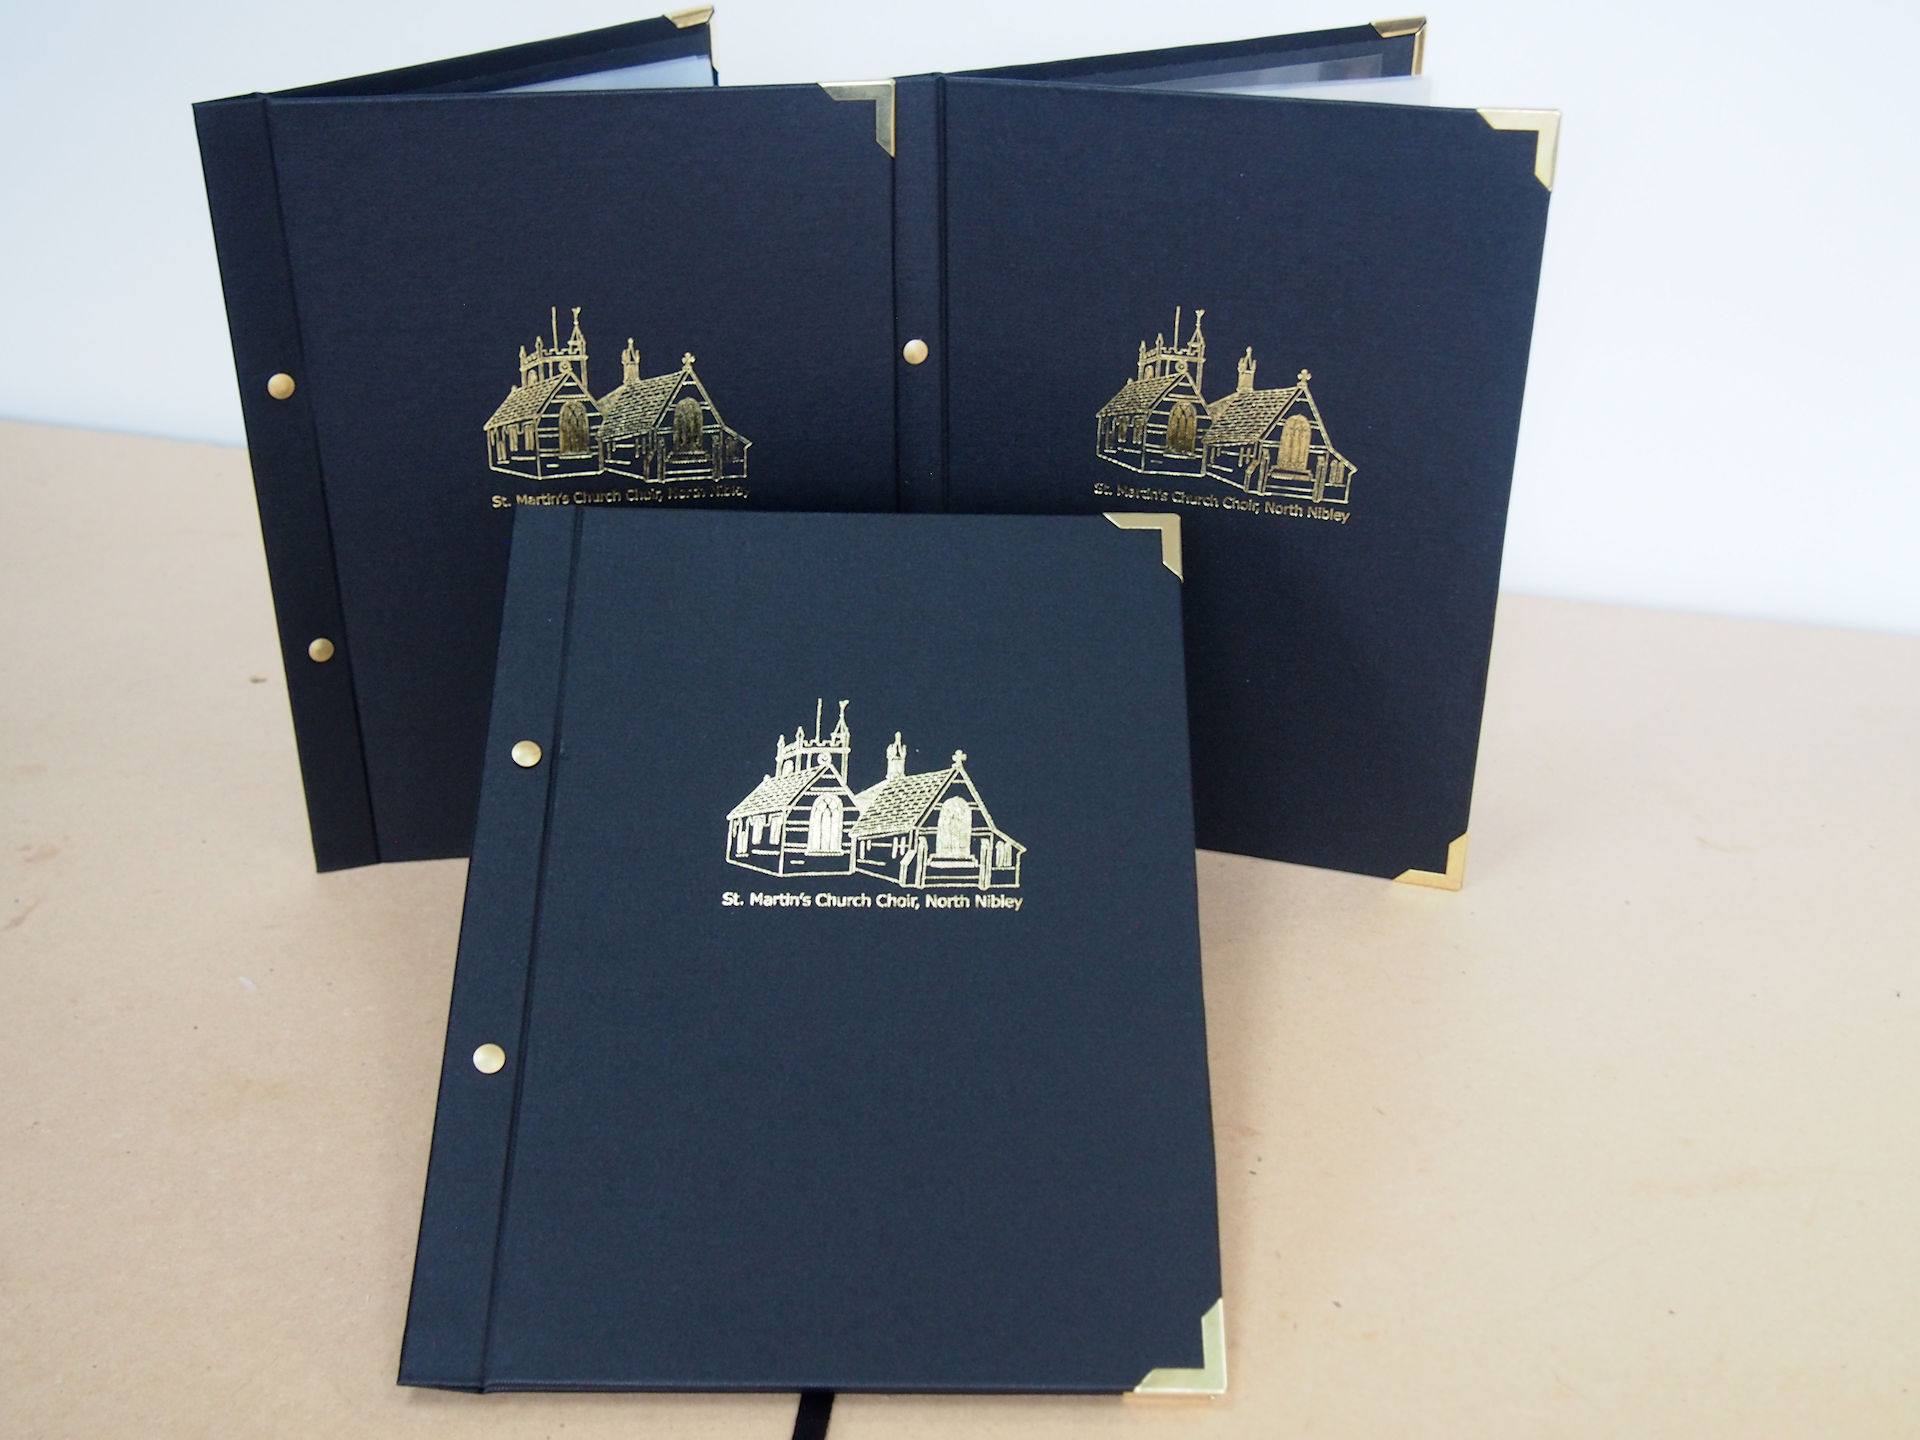 Q2 Choir Folder in Black